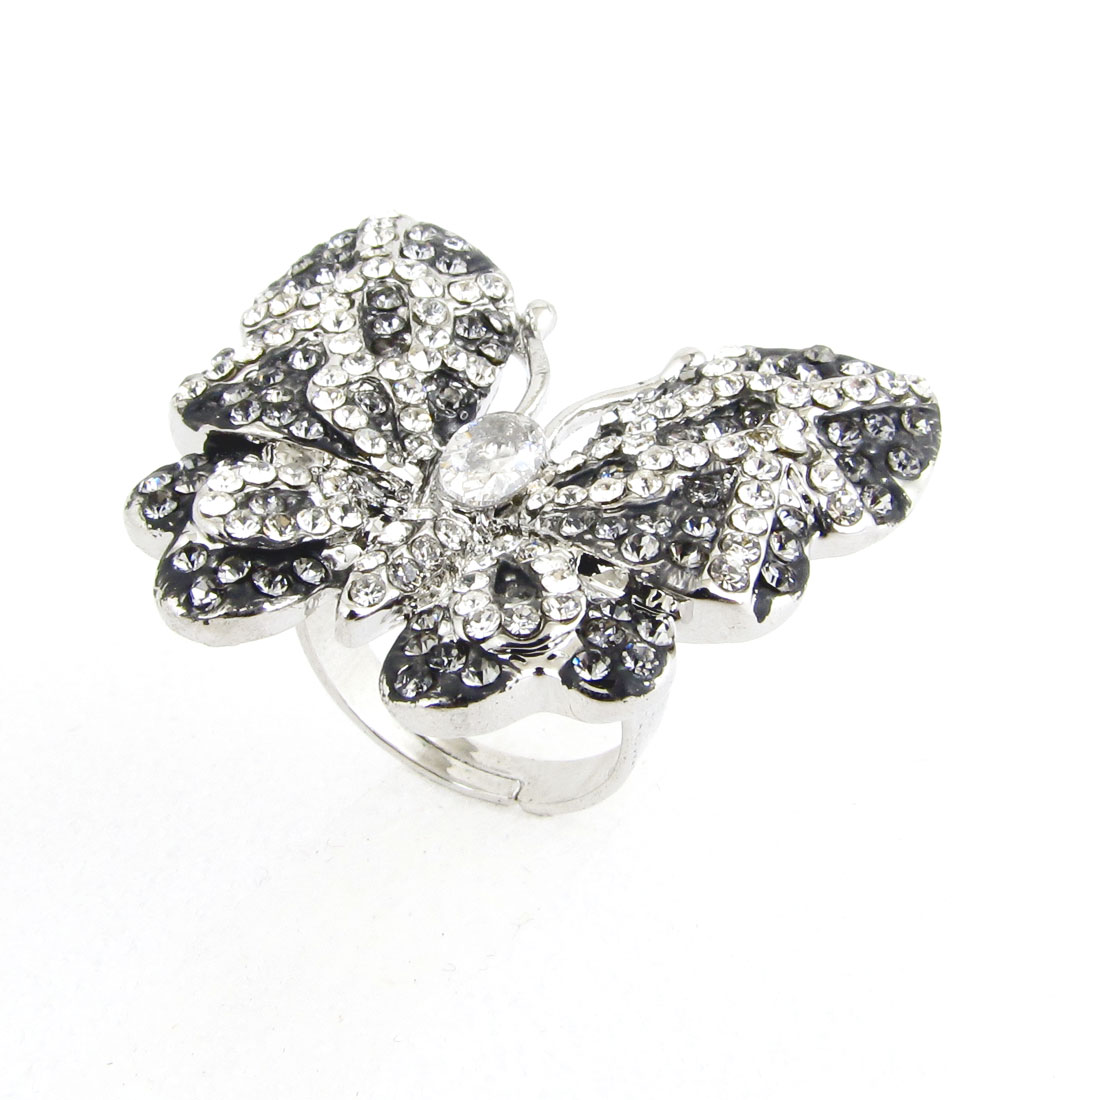 Gray Metal Butterfly Shape Decor Finger Ring US 6 1/2 for Lady